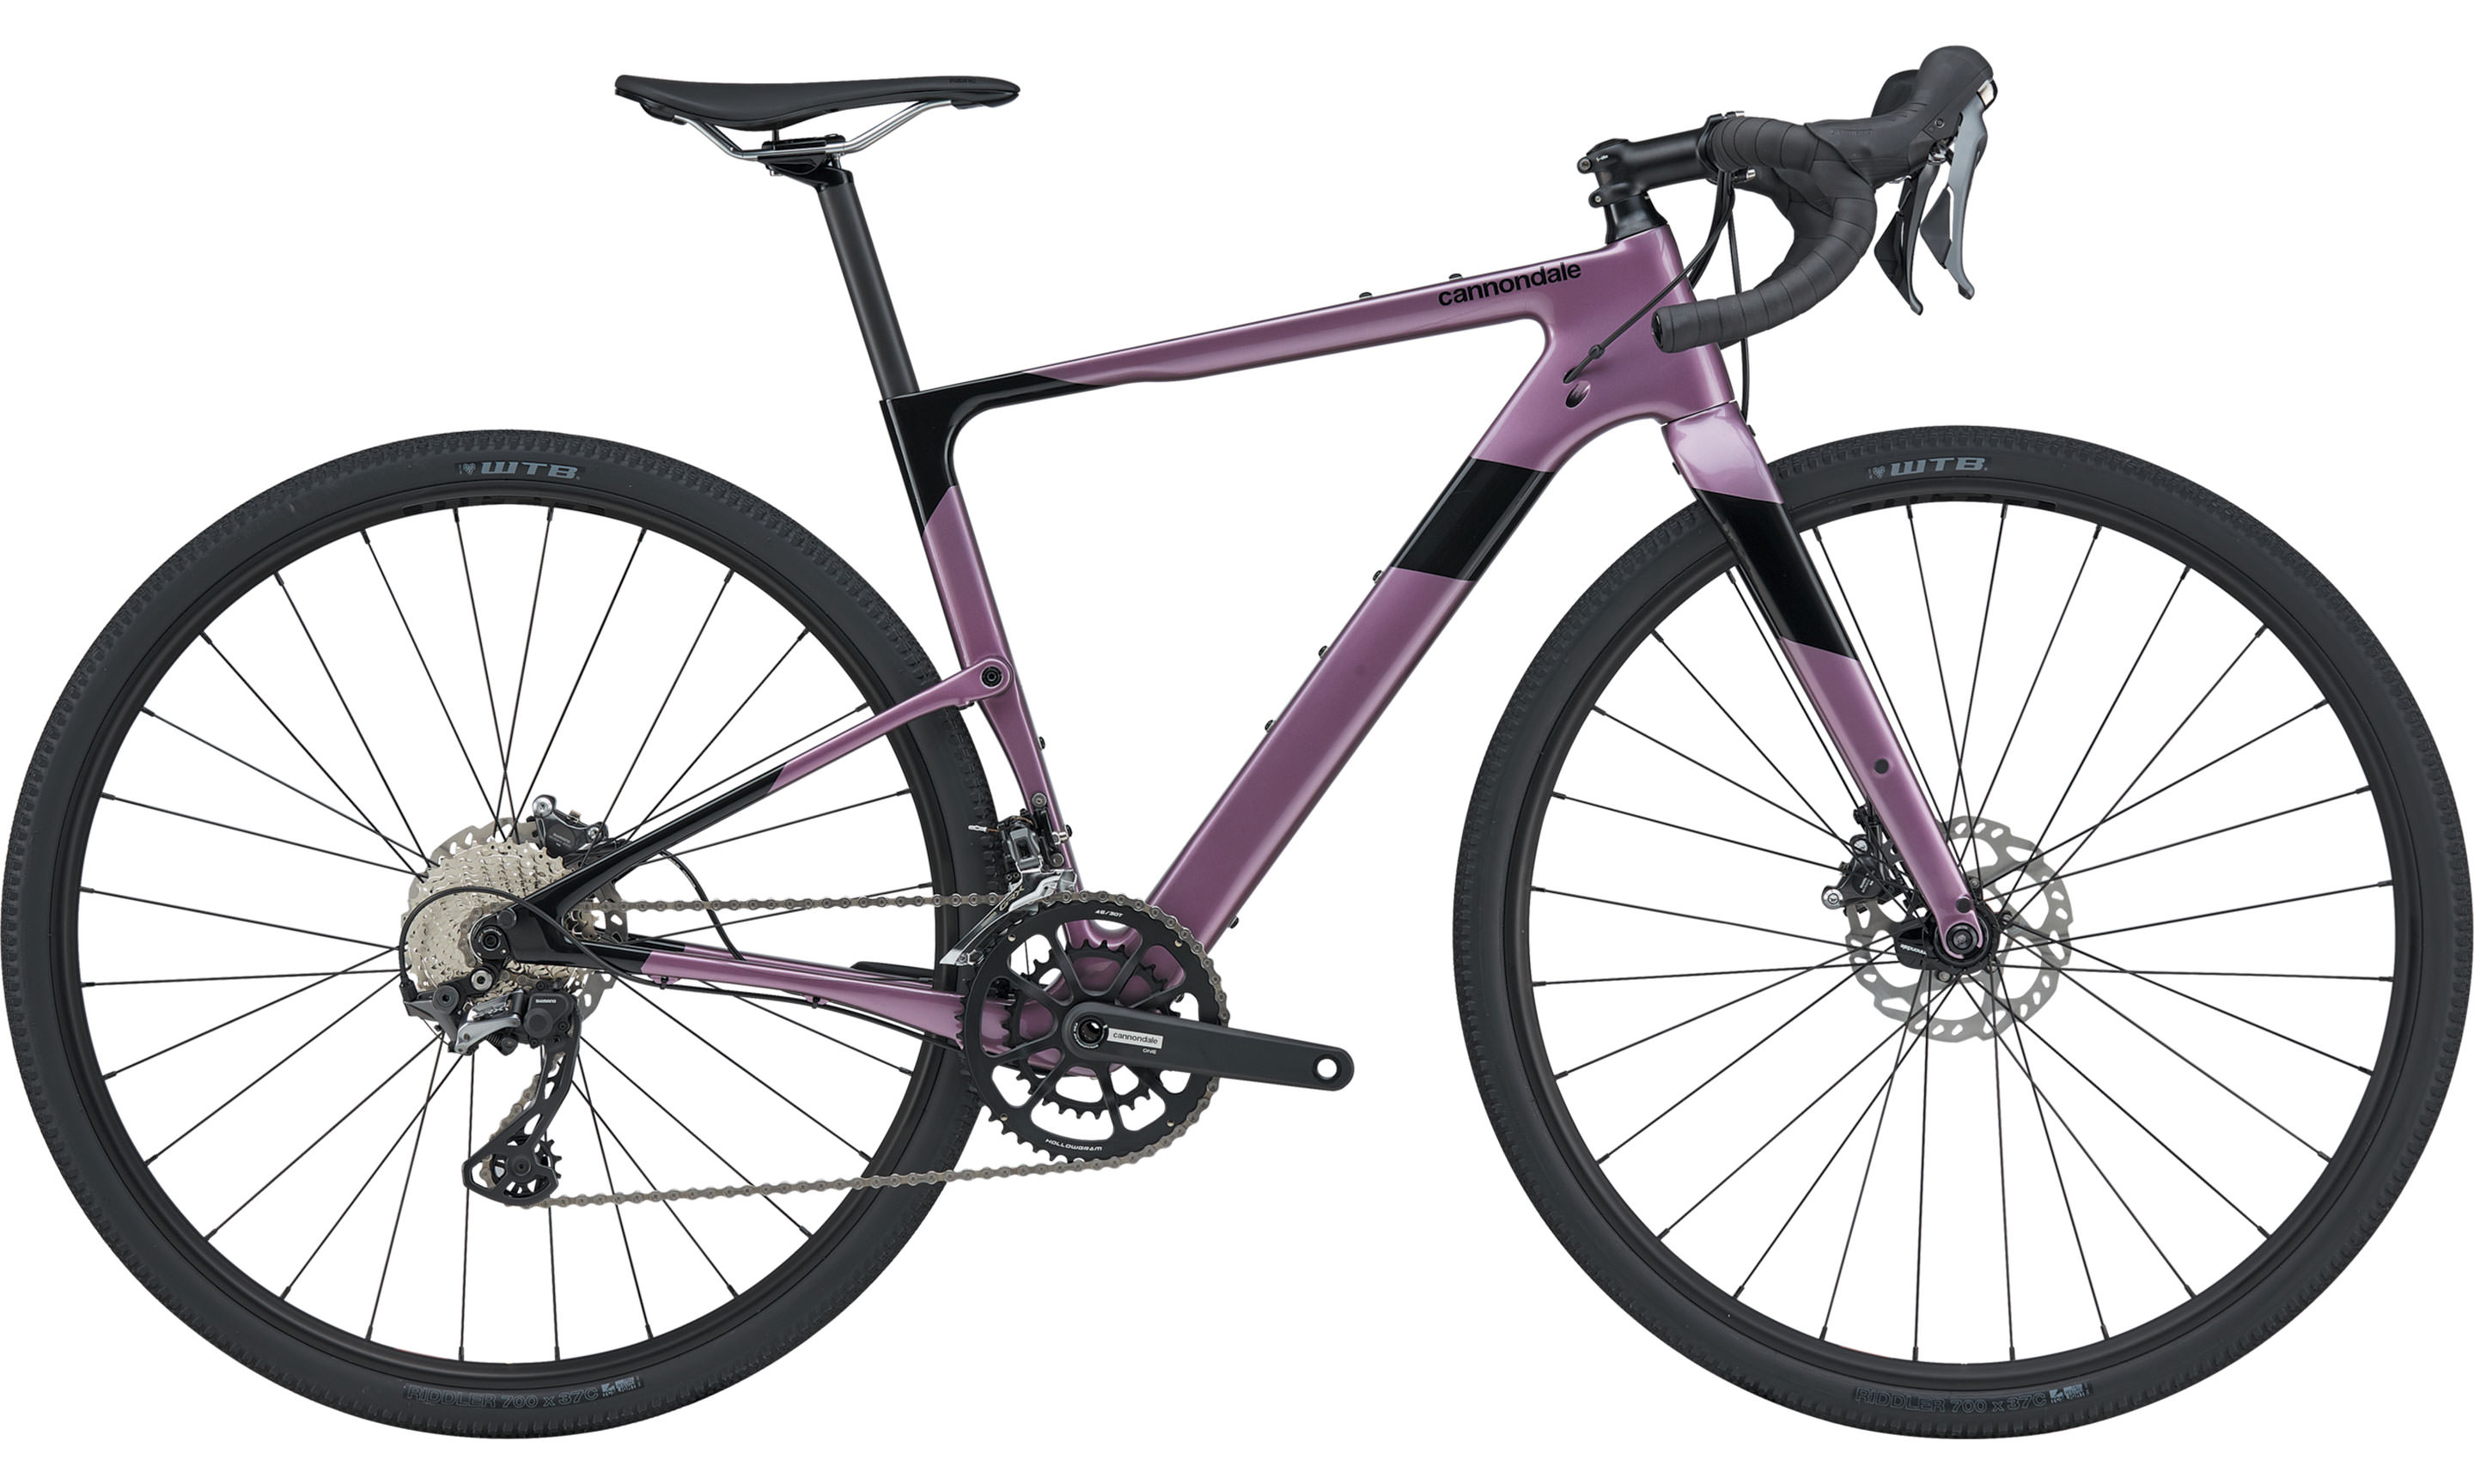 Topstone Carbon Women's 4 | Culture Vélo